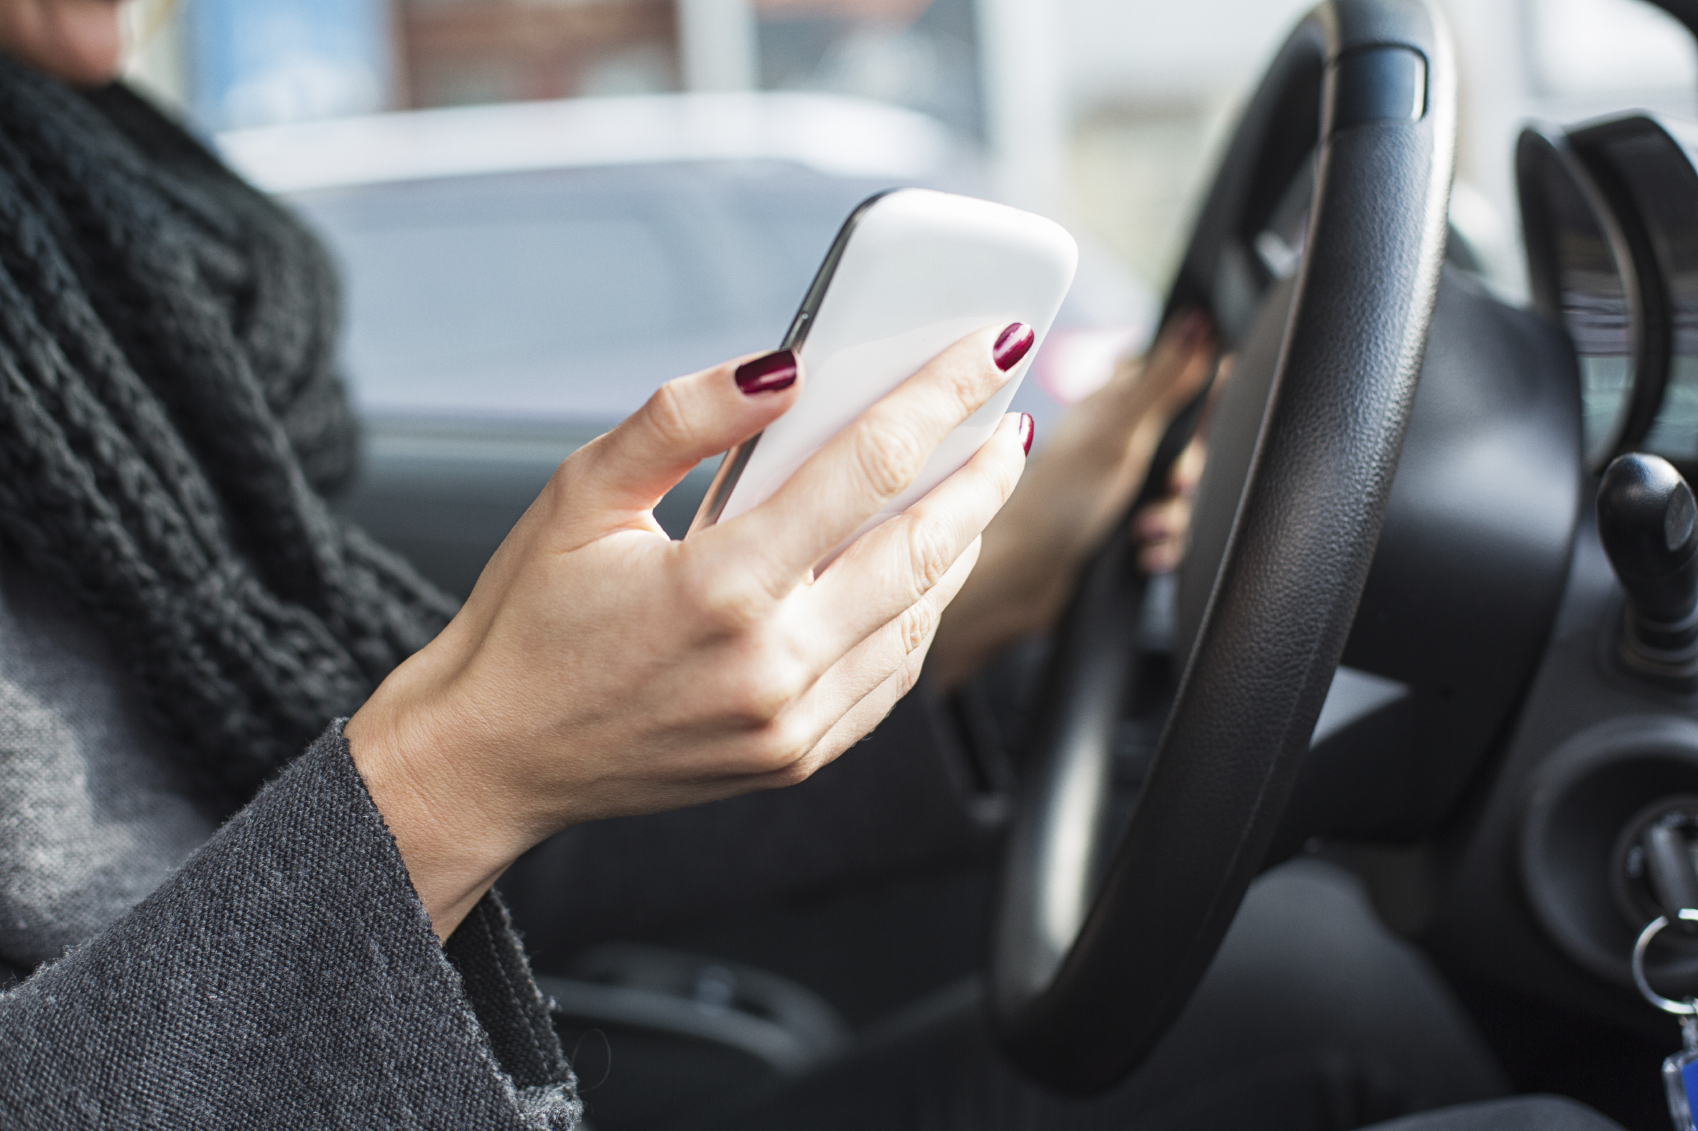 Reckless driving: woman texting in the car.